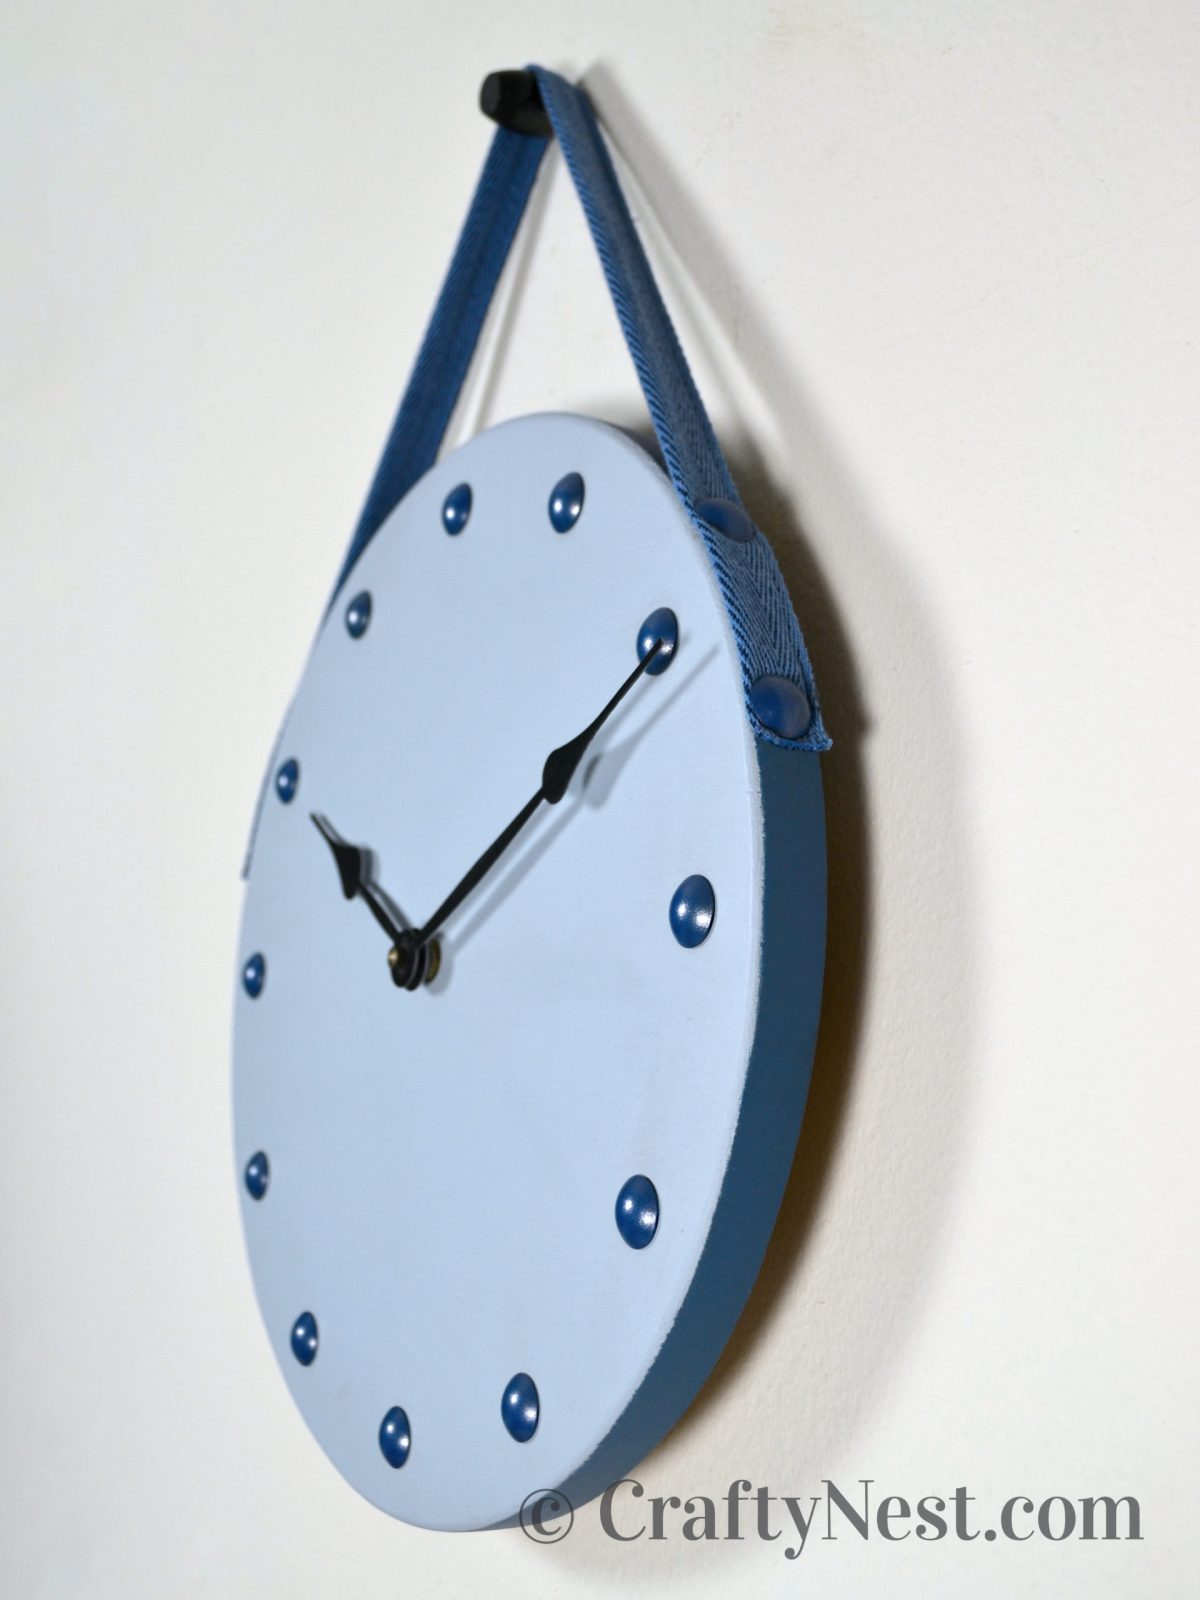 Side view of the clock, photo